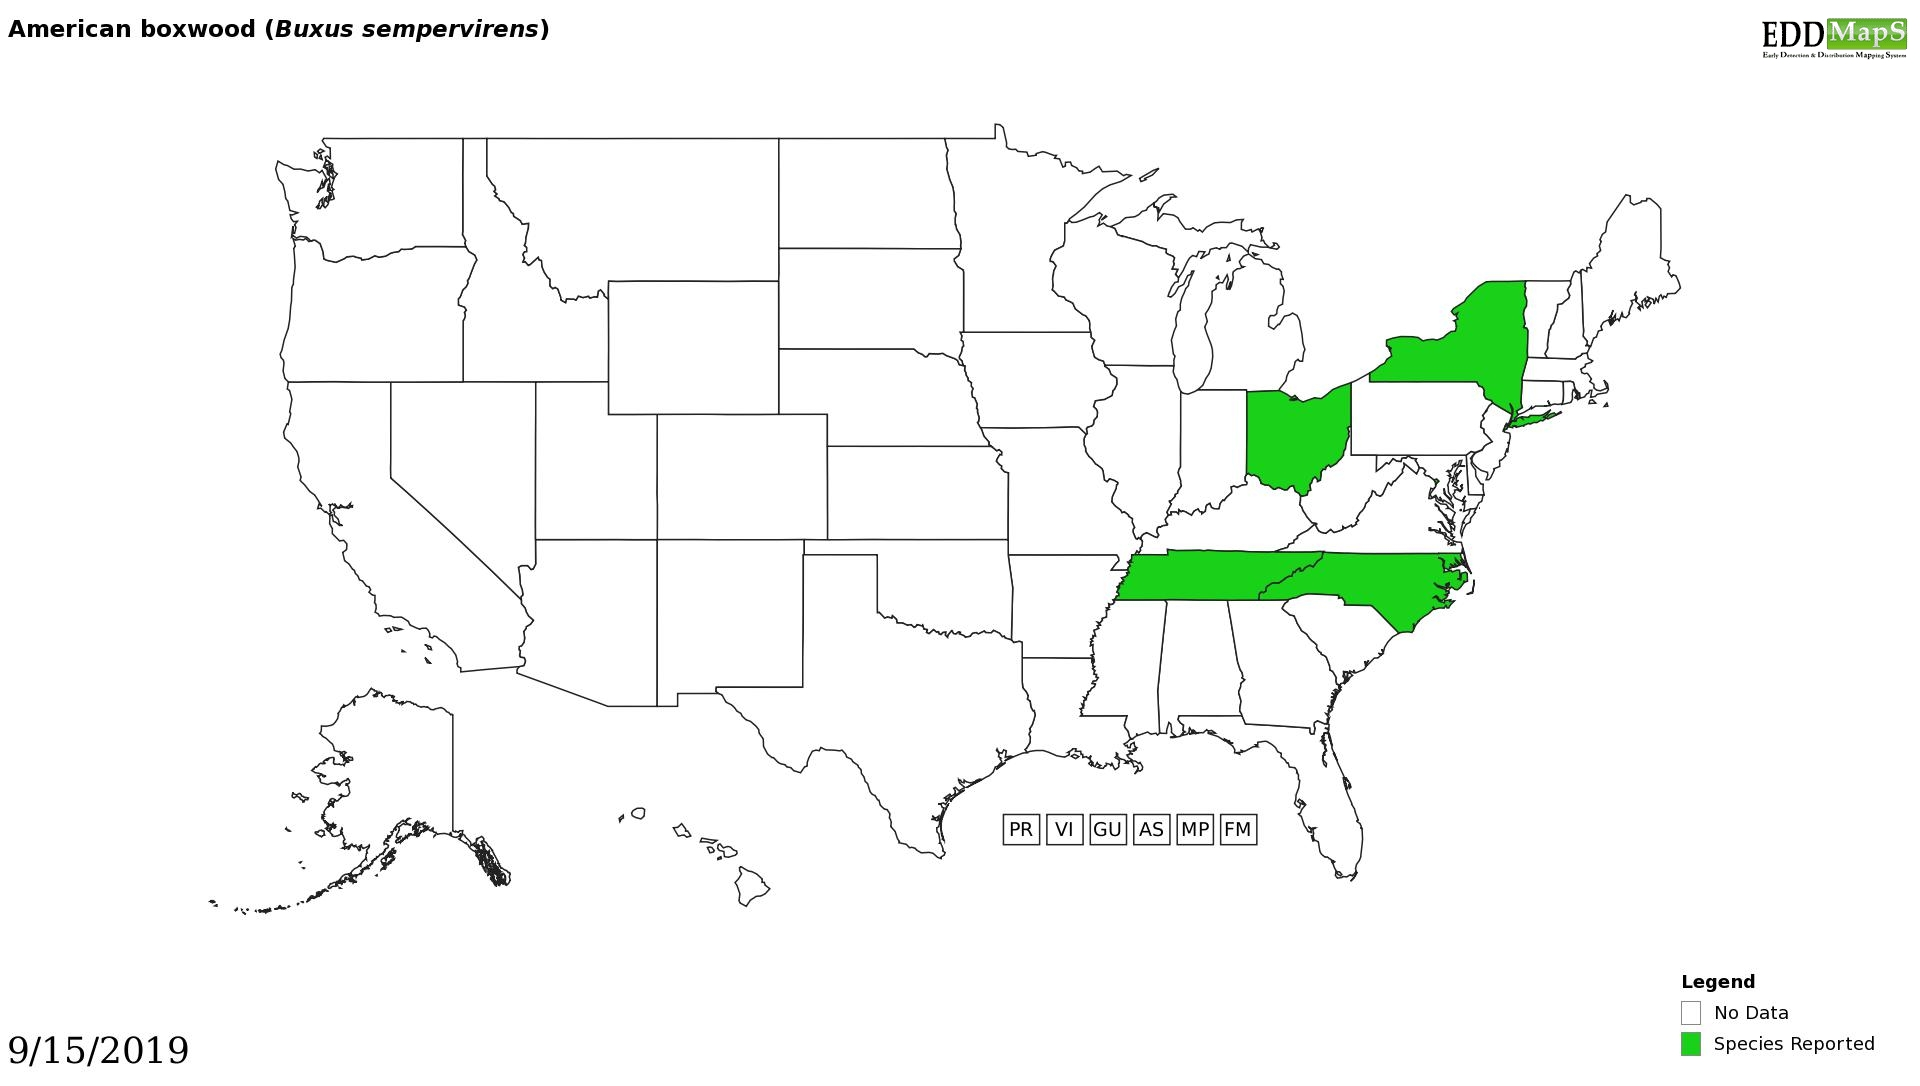 Boxwood distribution - United States